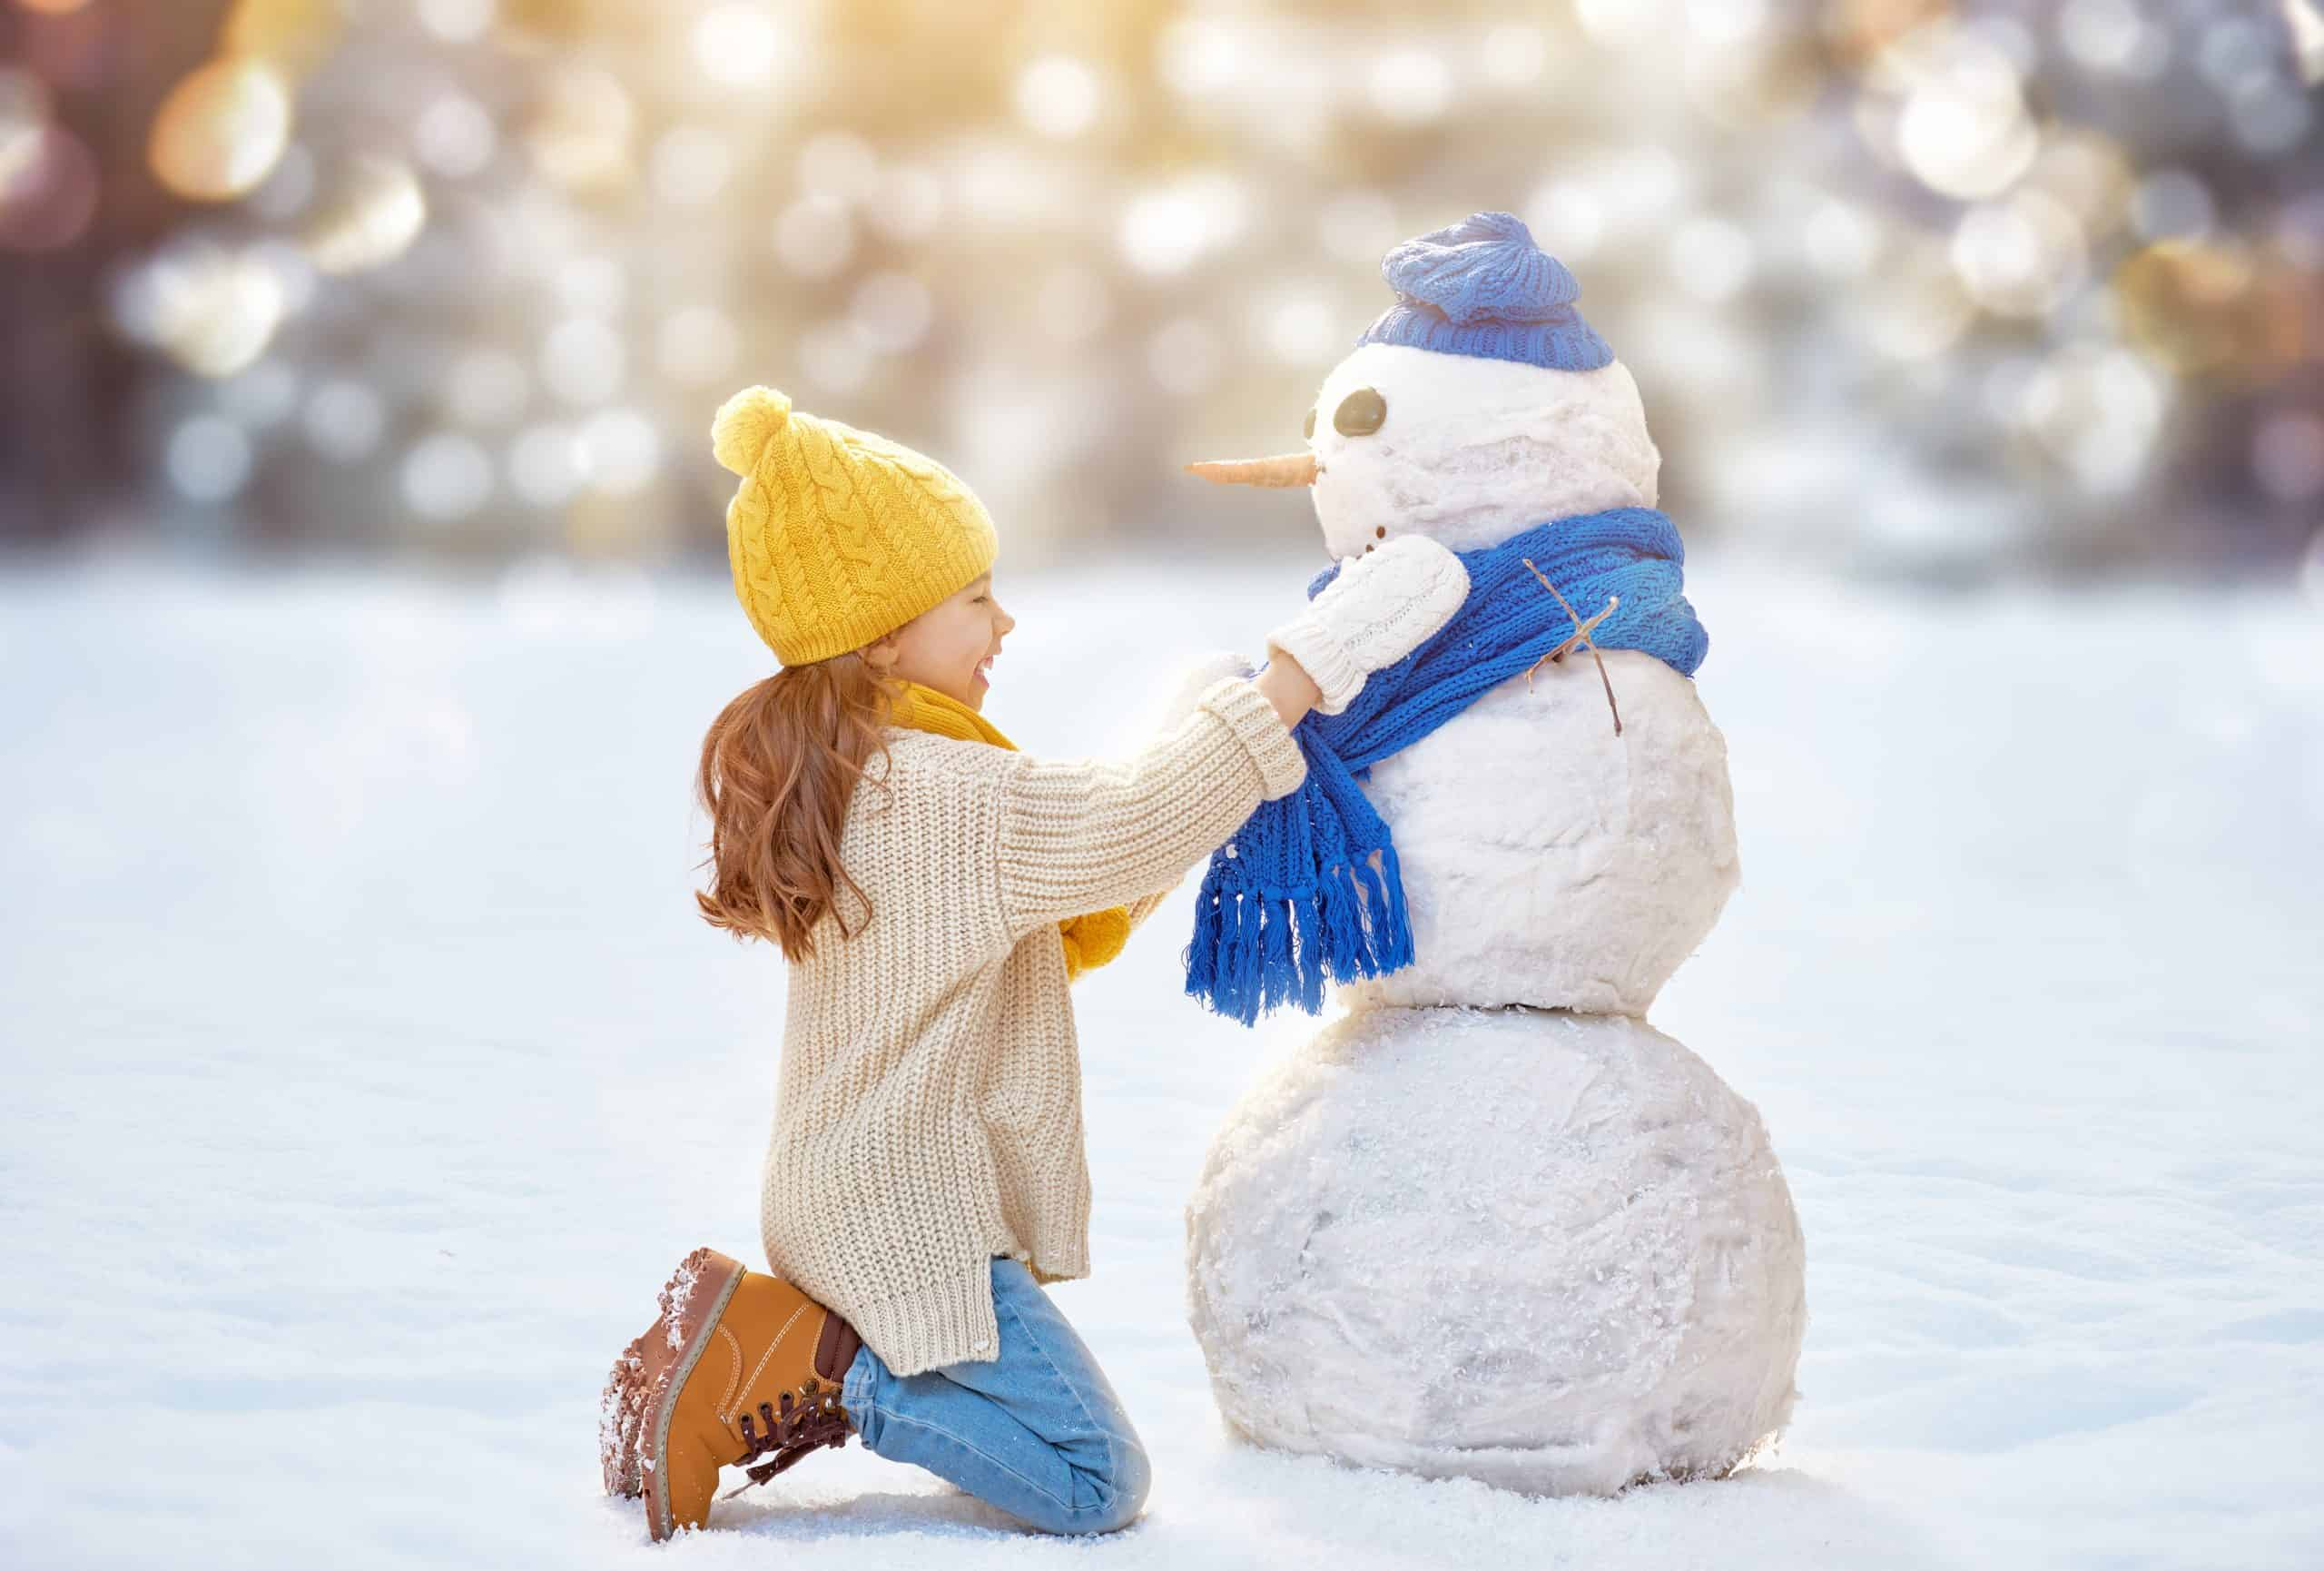 The Best Snowman Accessories to Have the Coolest Snowman on the Block